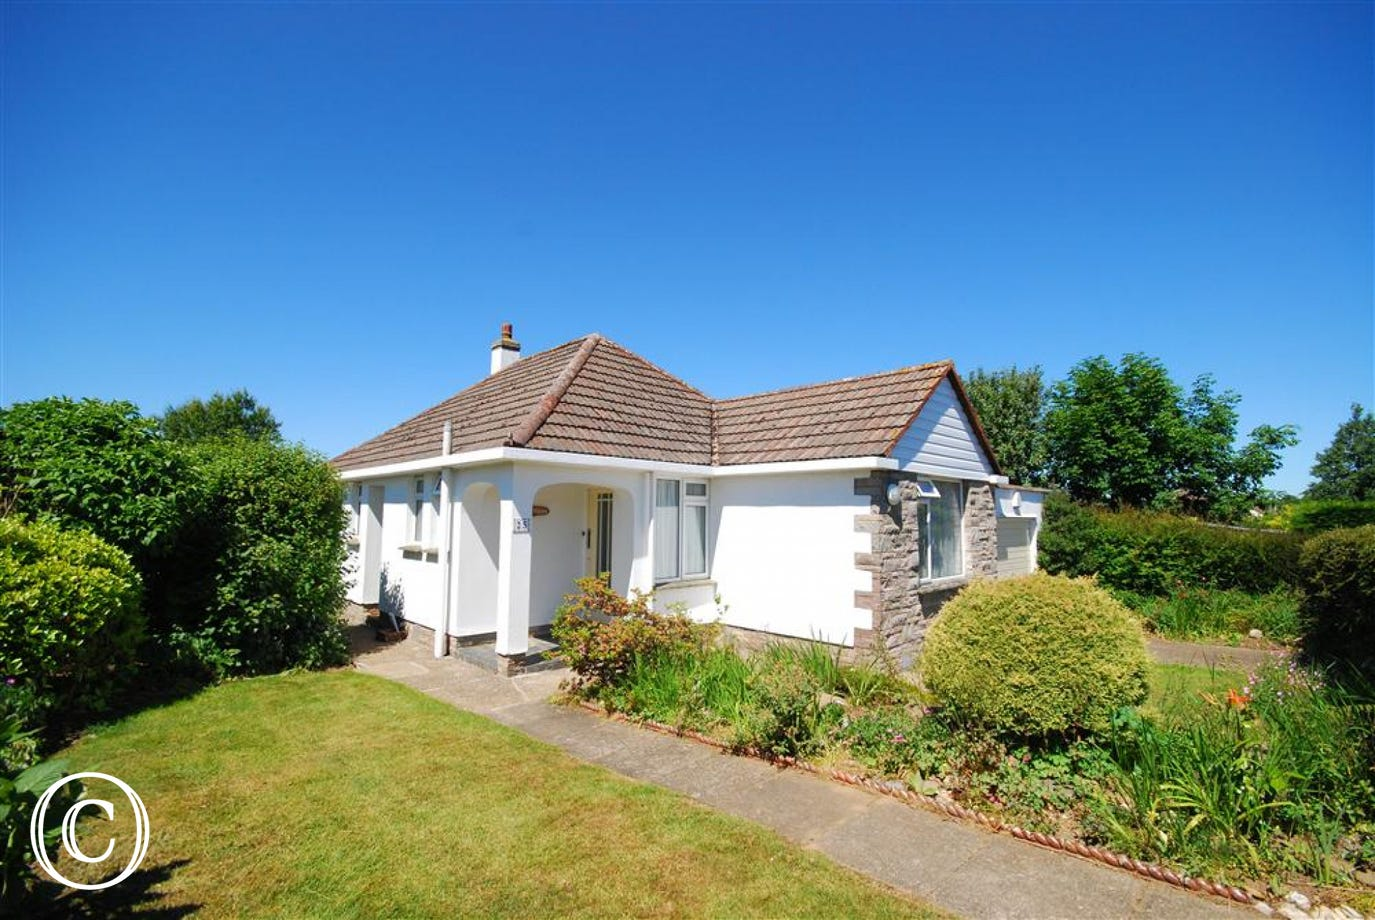 Detached bungalow surrounded by pretty gardens